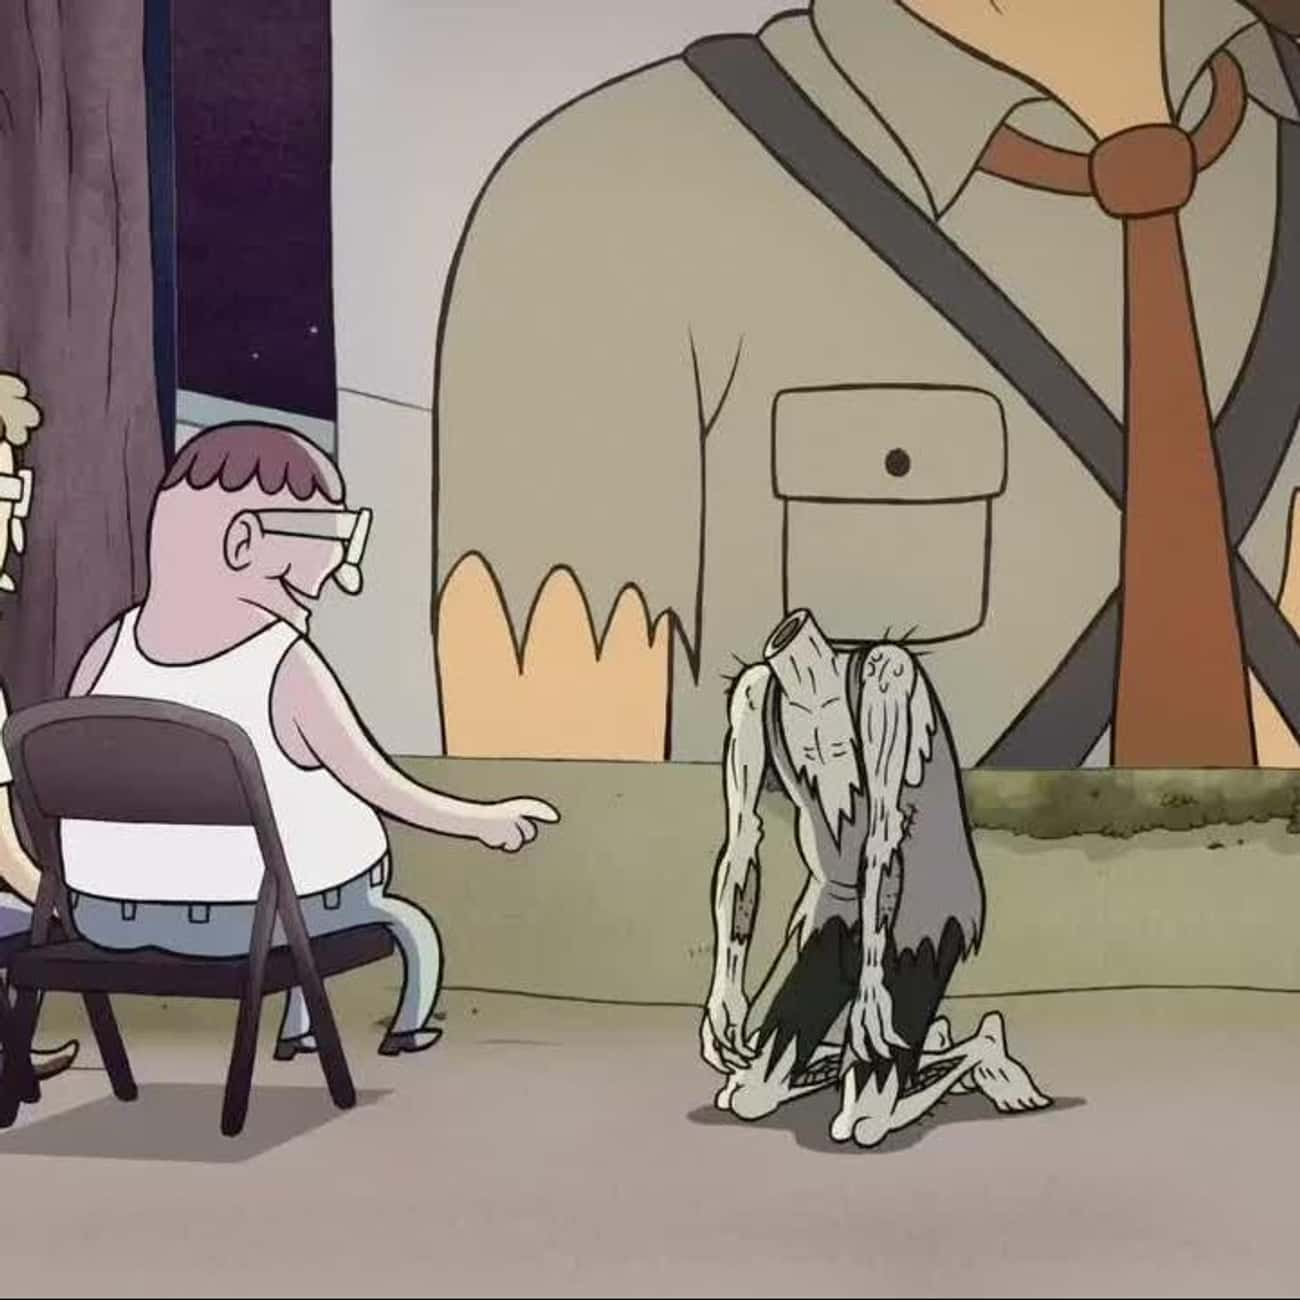 Grave Sights is listed (or ranked) 4 on the list The Best Episodes of Regular Show